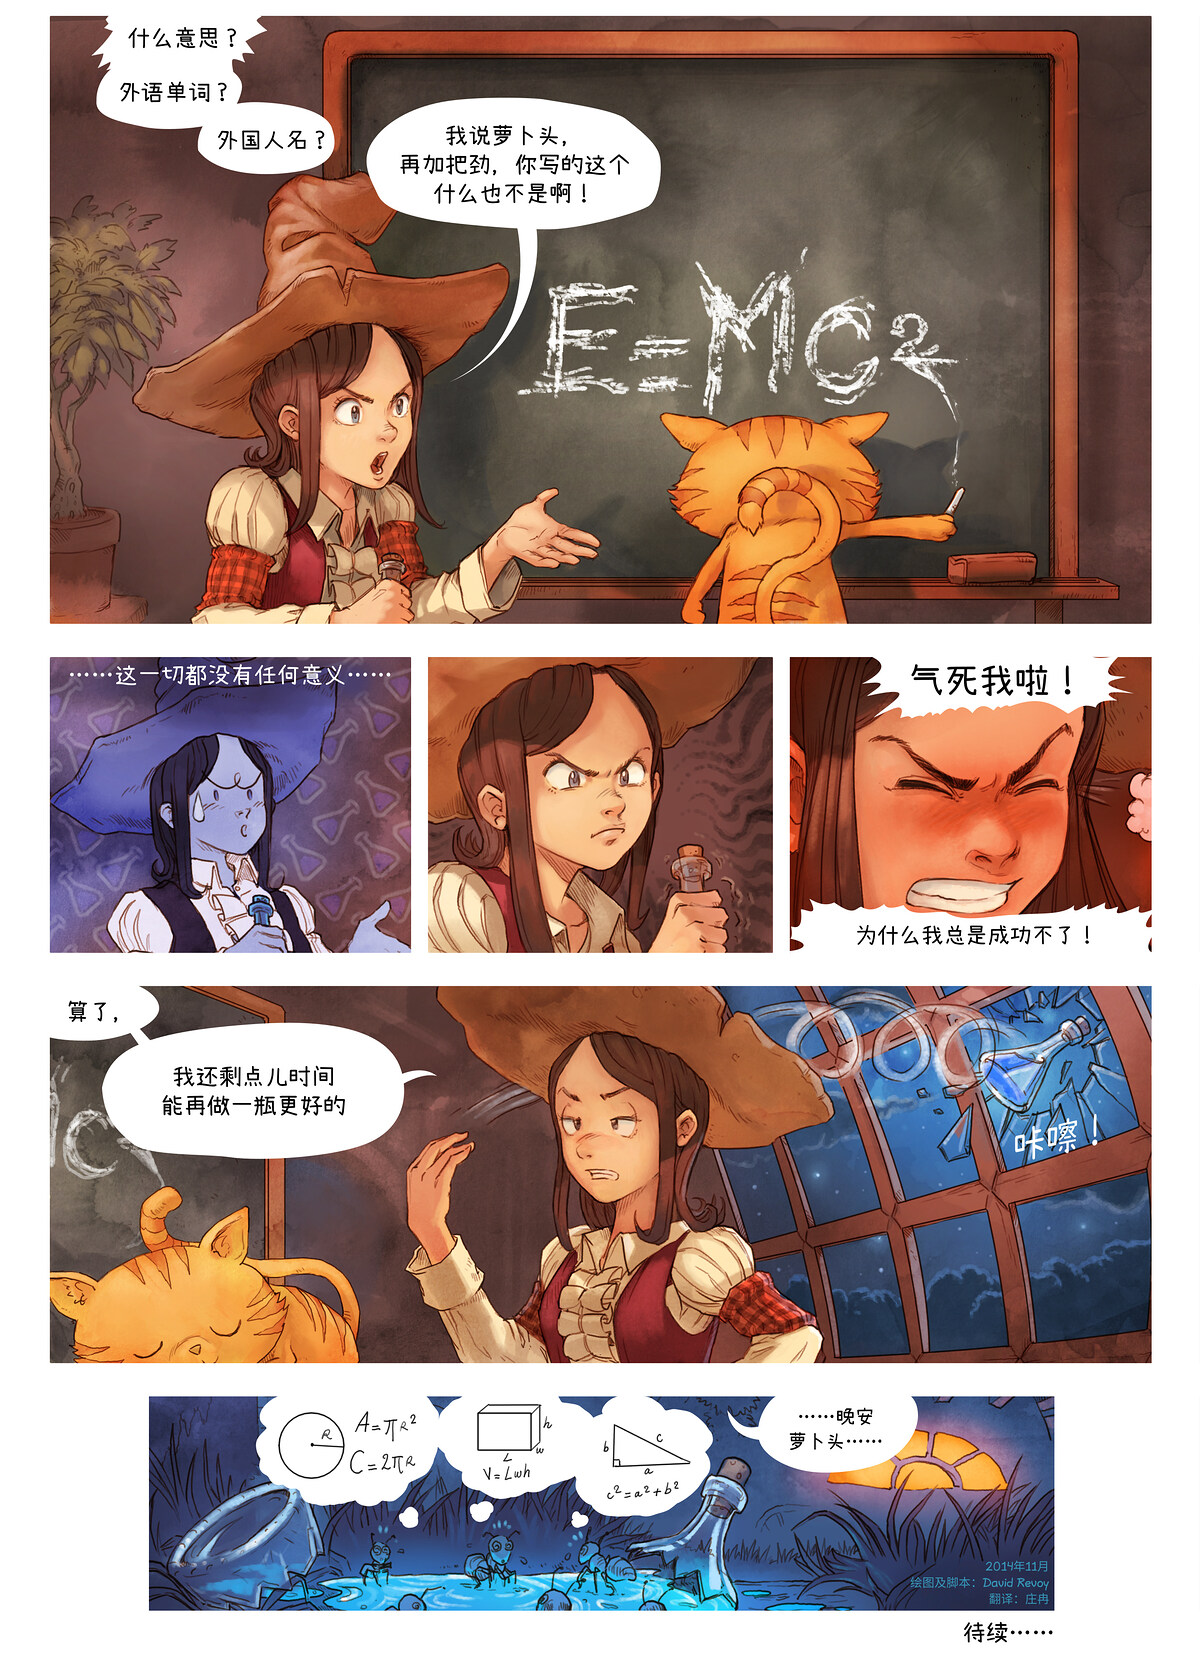 A webcomic page of Pepper&Carrot, 漫画全集 4 [cn], 页面 7